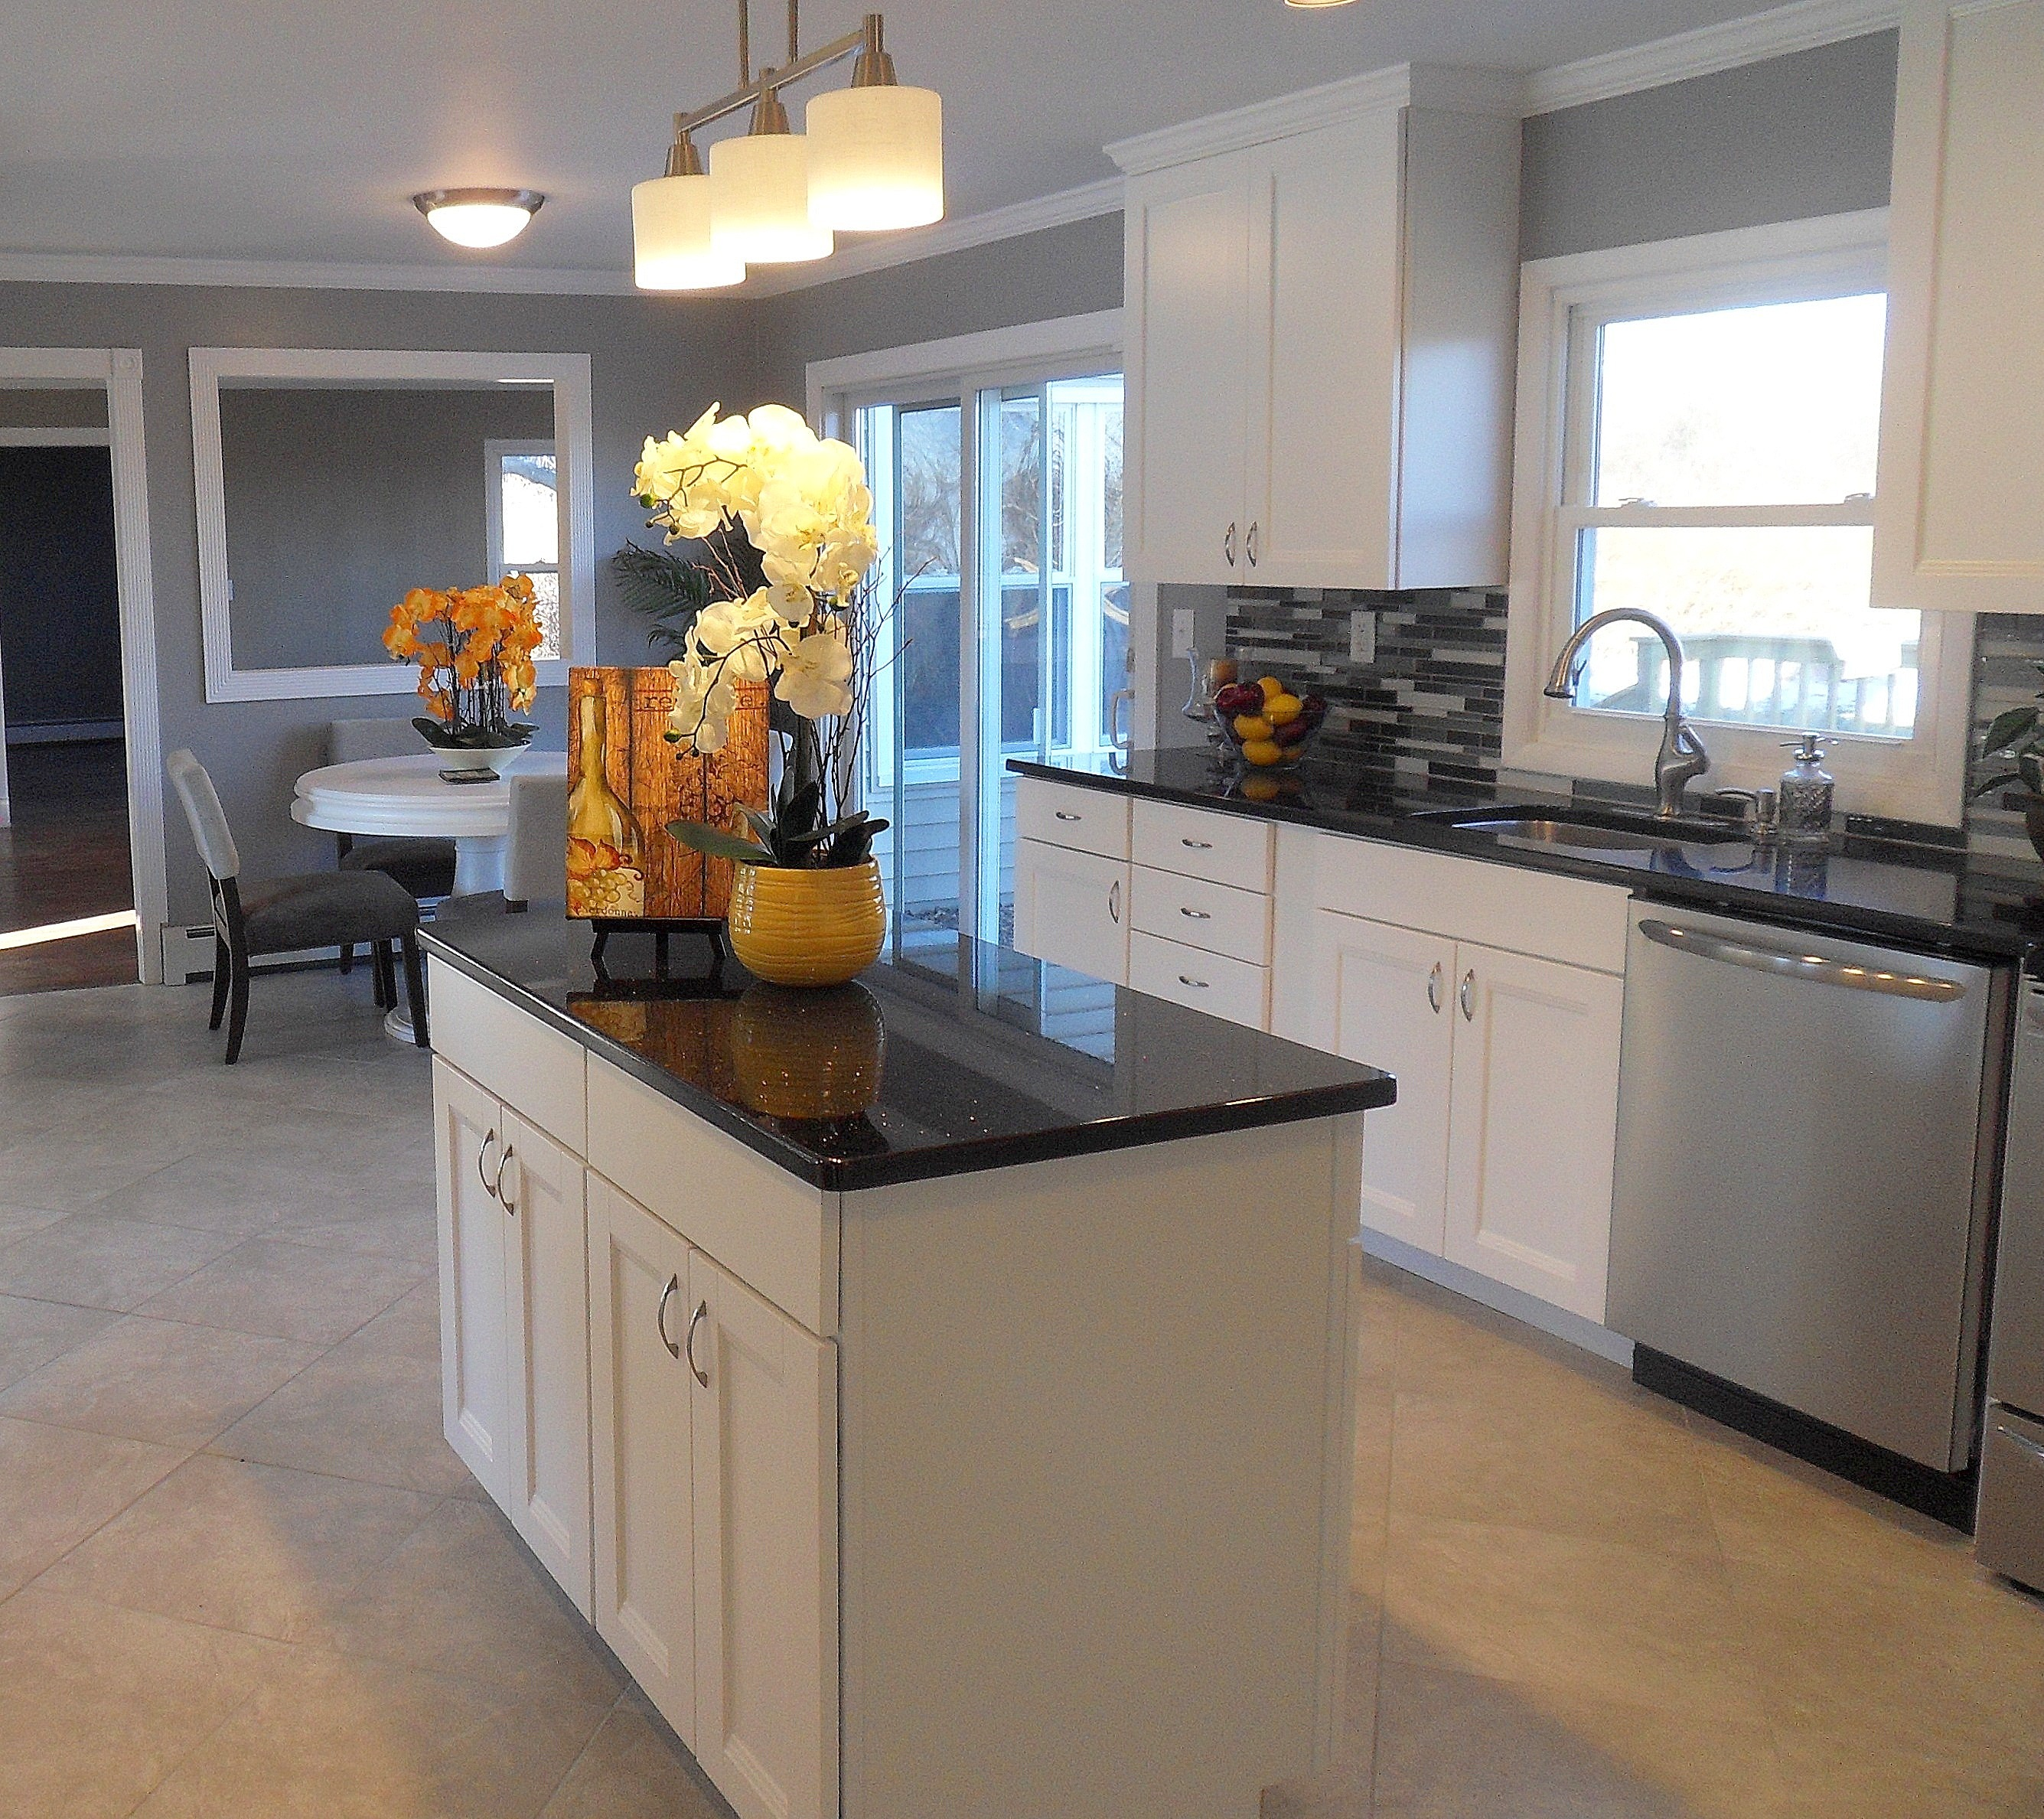 Kitchen after kates home staging and interior design